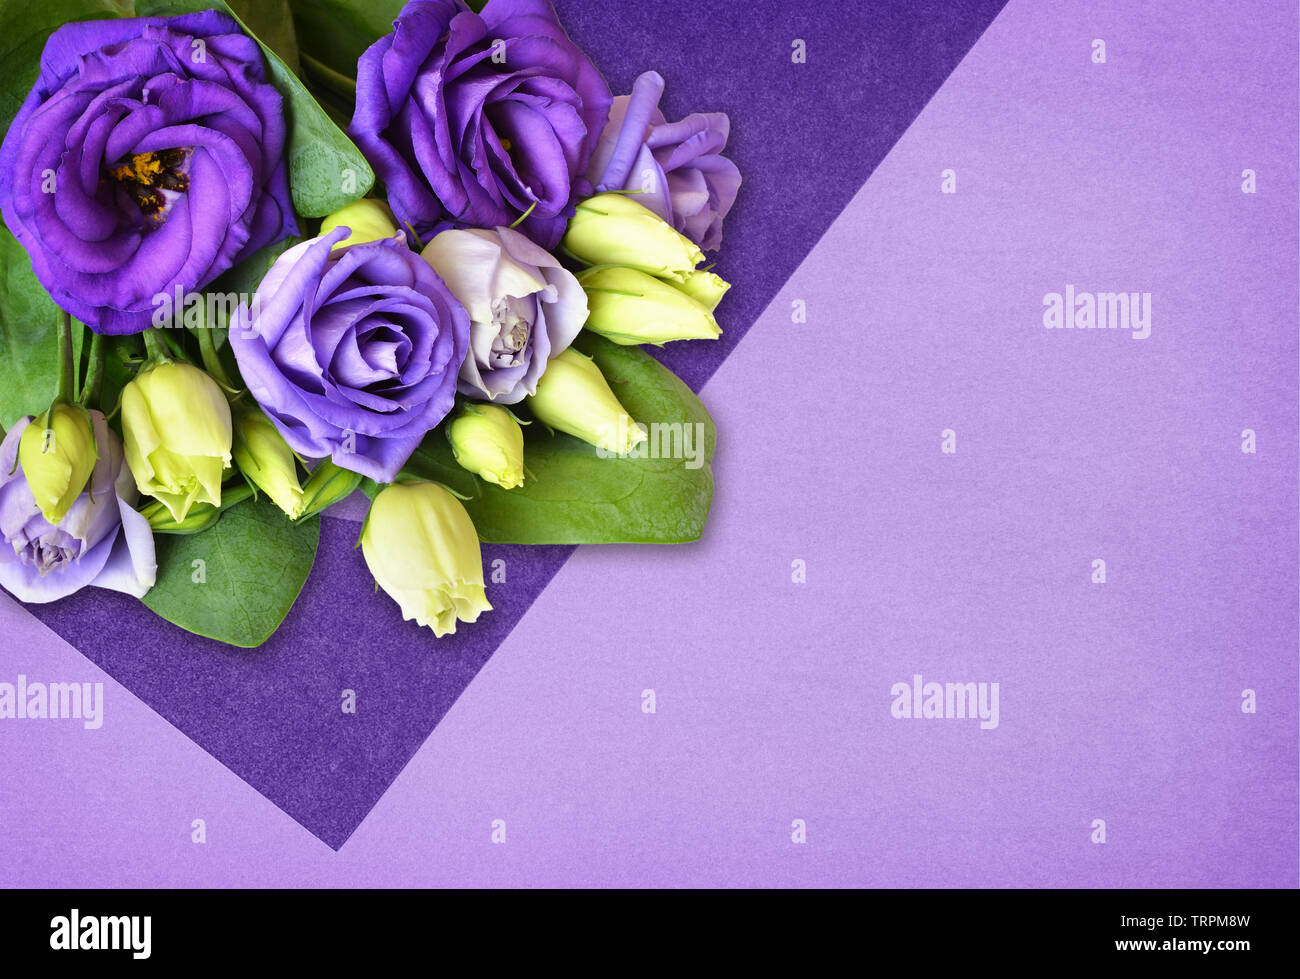 Corner arrangement with lisianthus flowers on modern flat lay background with papers of different shades of purple - Stock Image